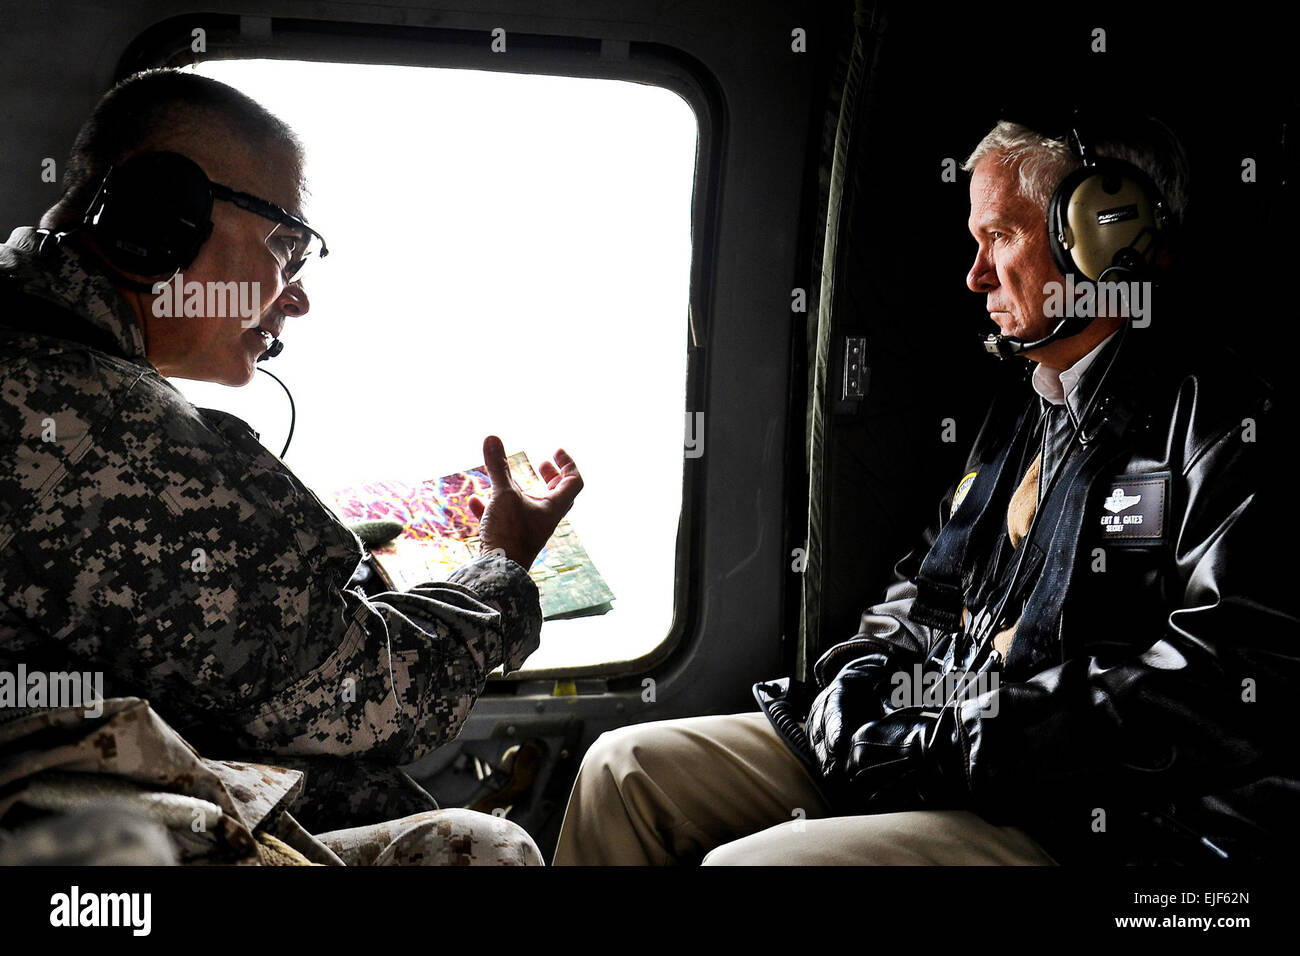 Defense Secretary Robert M. Gates listens to the Commanding General 101st Airborne Major Gen. Campbell while inflight - Stock Image